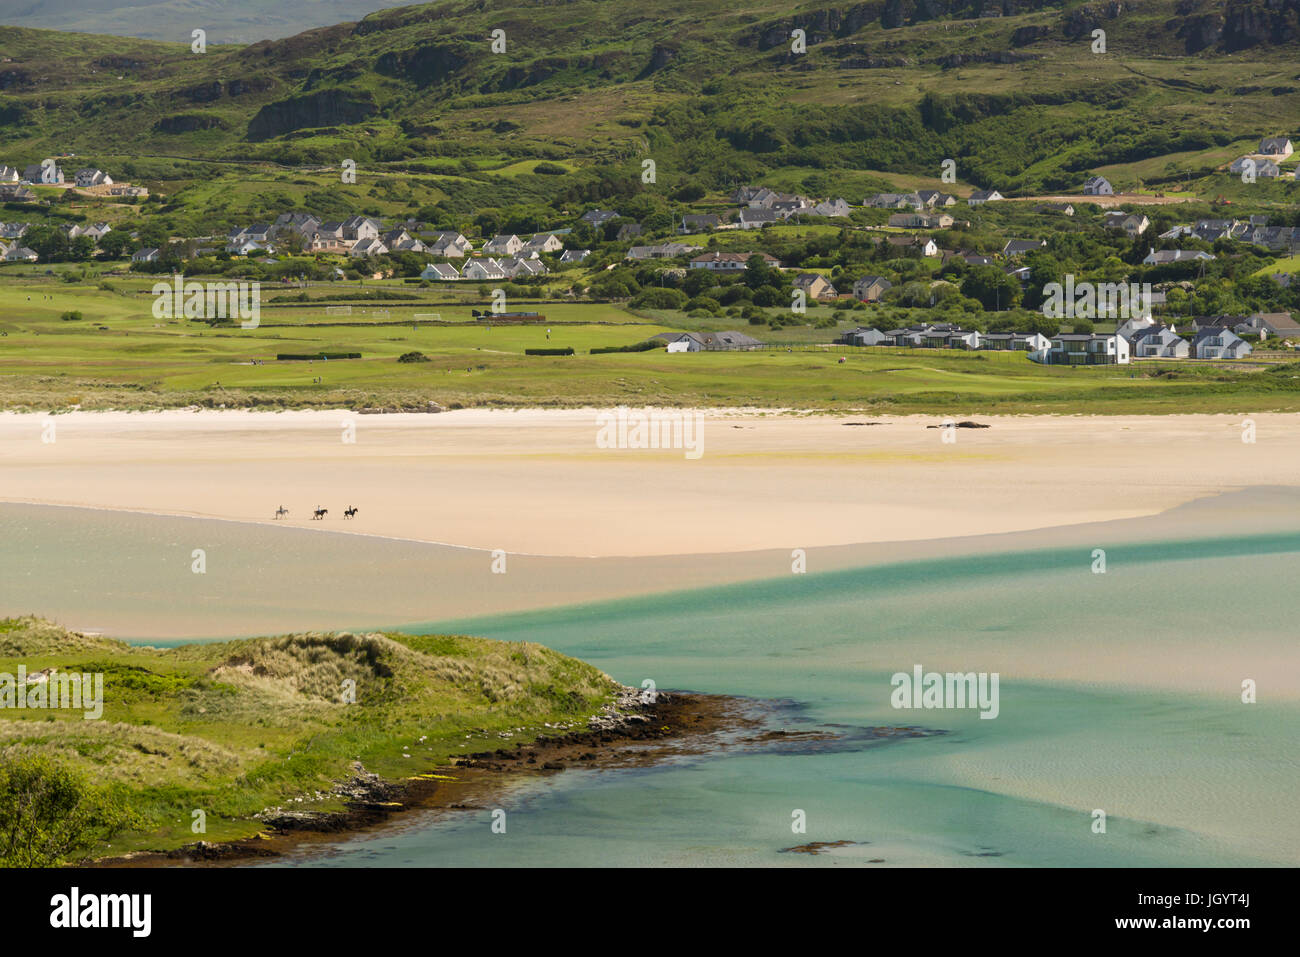 Three horses and riders crossing the beach at Dunfanaghy County Donegal Ireland - Stock Image